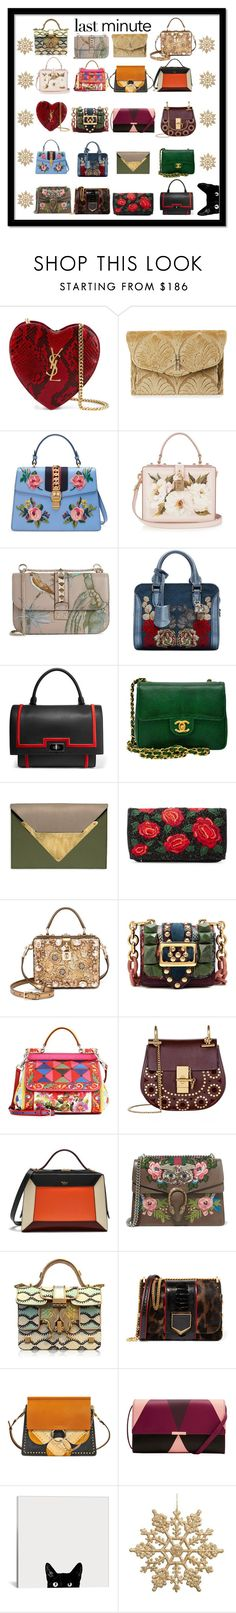 """""""A Girl Can Never Have Too Many Bags"""" by atheris ❤ liked on Polyvore featuring Yves Saint Laurent, Hayward, Gucci, Dolce&Gabbana, Valentino, Alexander McQueen, Givenchy, Chanel, Dareen Hakim and Alice + Olivia"""